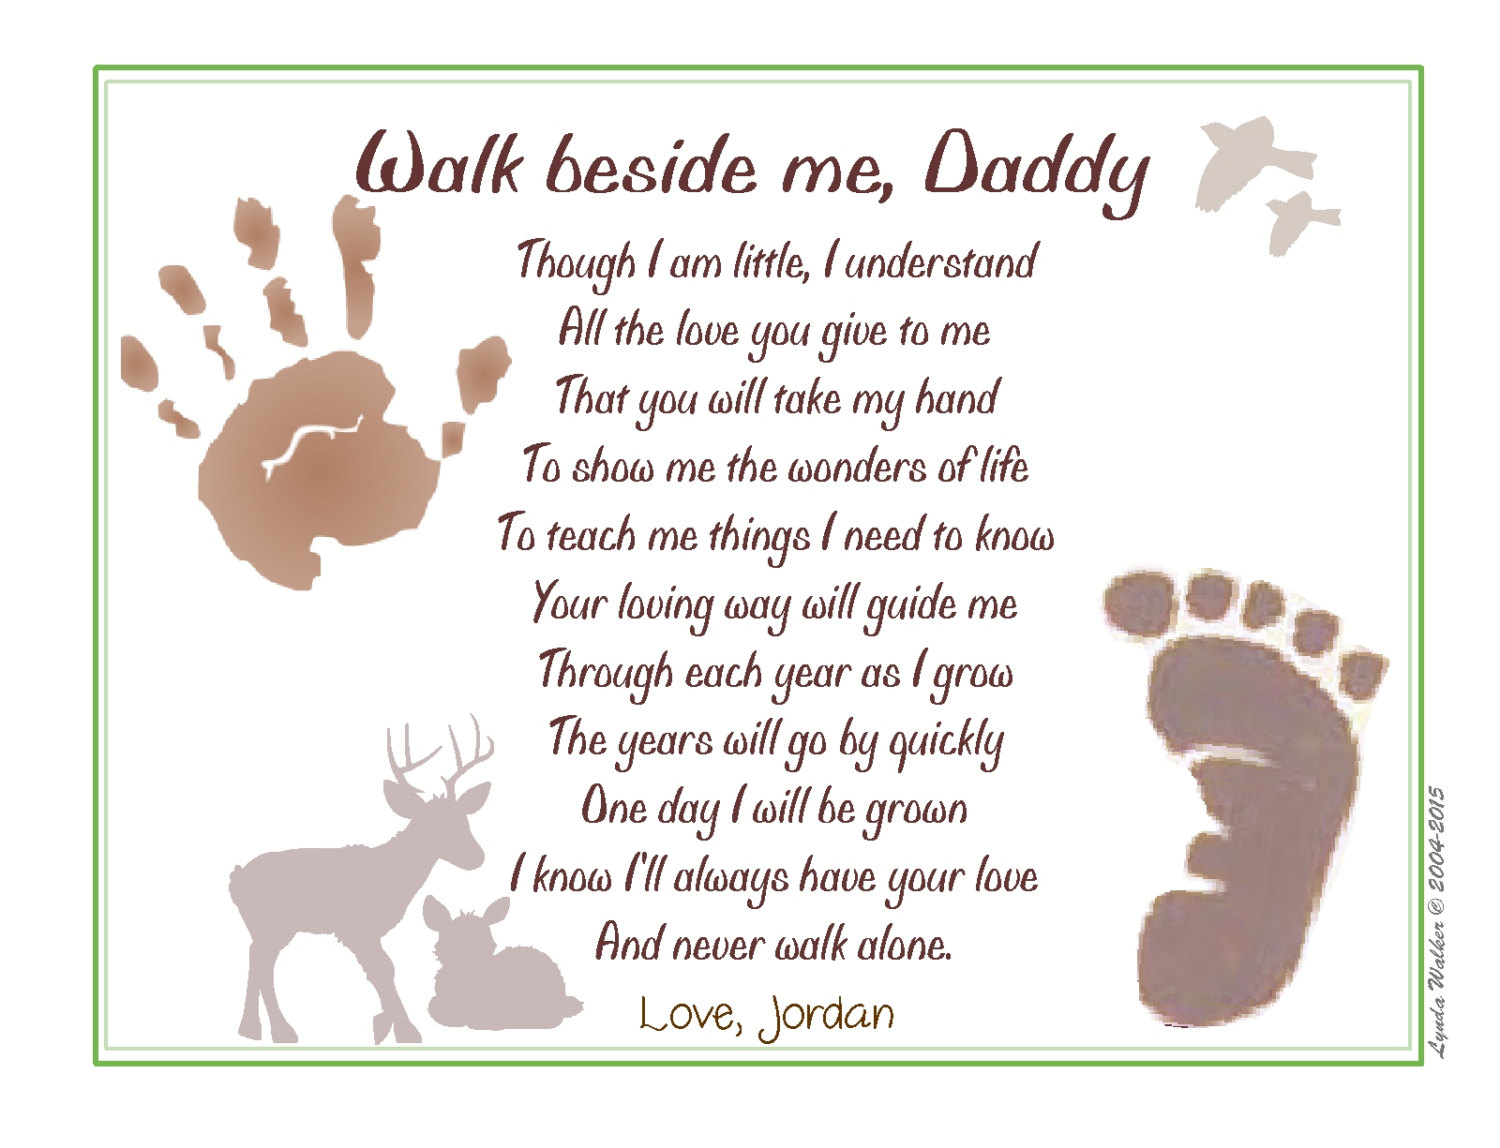 picture about Walk With Me Daddy Poem Printable called Daddy Poems